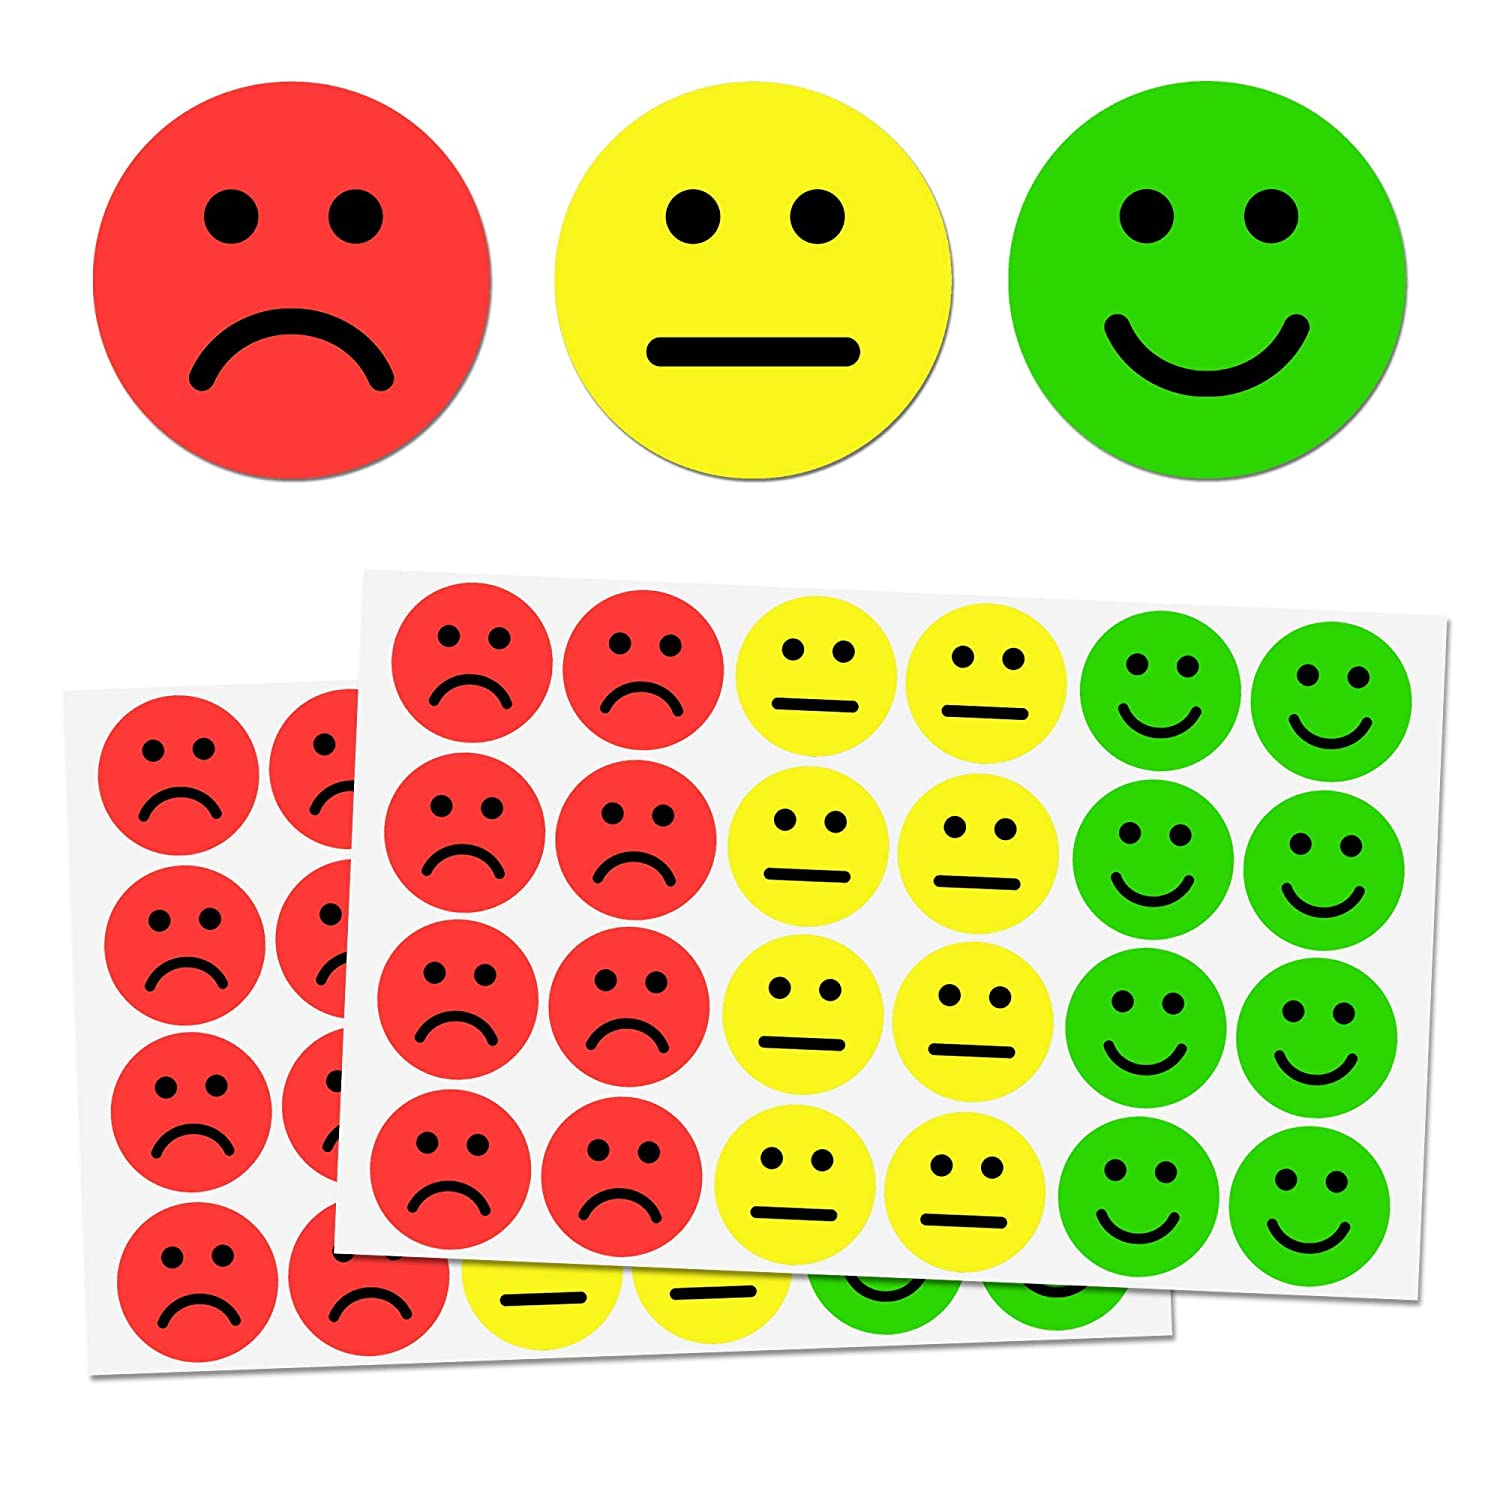 "1"" Happy/Sad Smiling Face Stickers - 3 Colors (Red/Yellow/Green), Pack of 1200 71DpYzMHMAL"